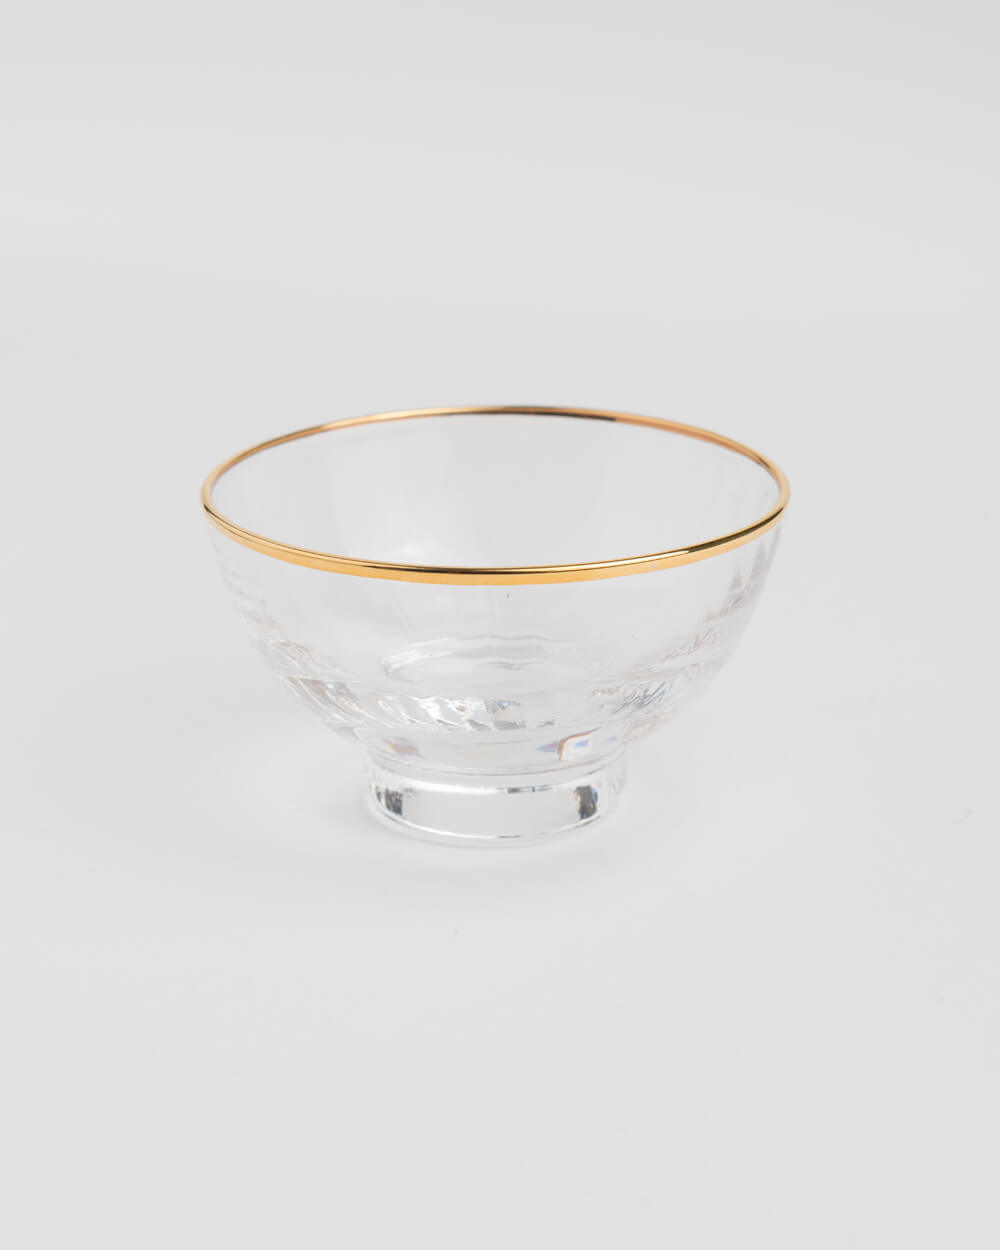 Hand-Made Crystal Gold-Lined Stripe